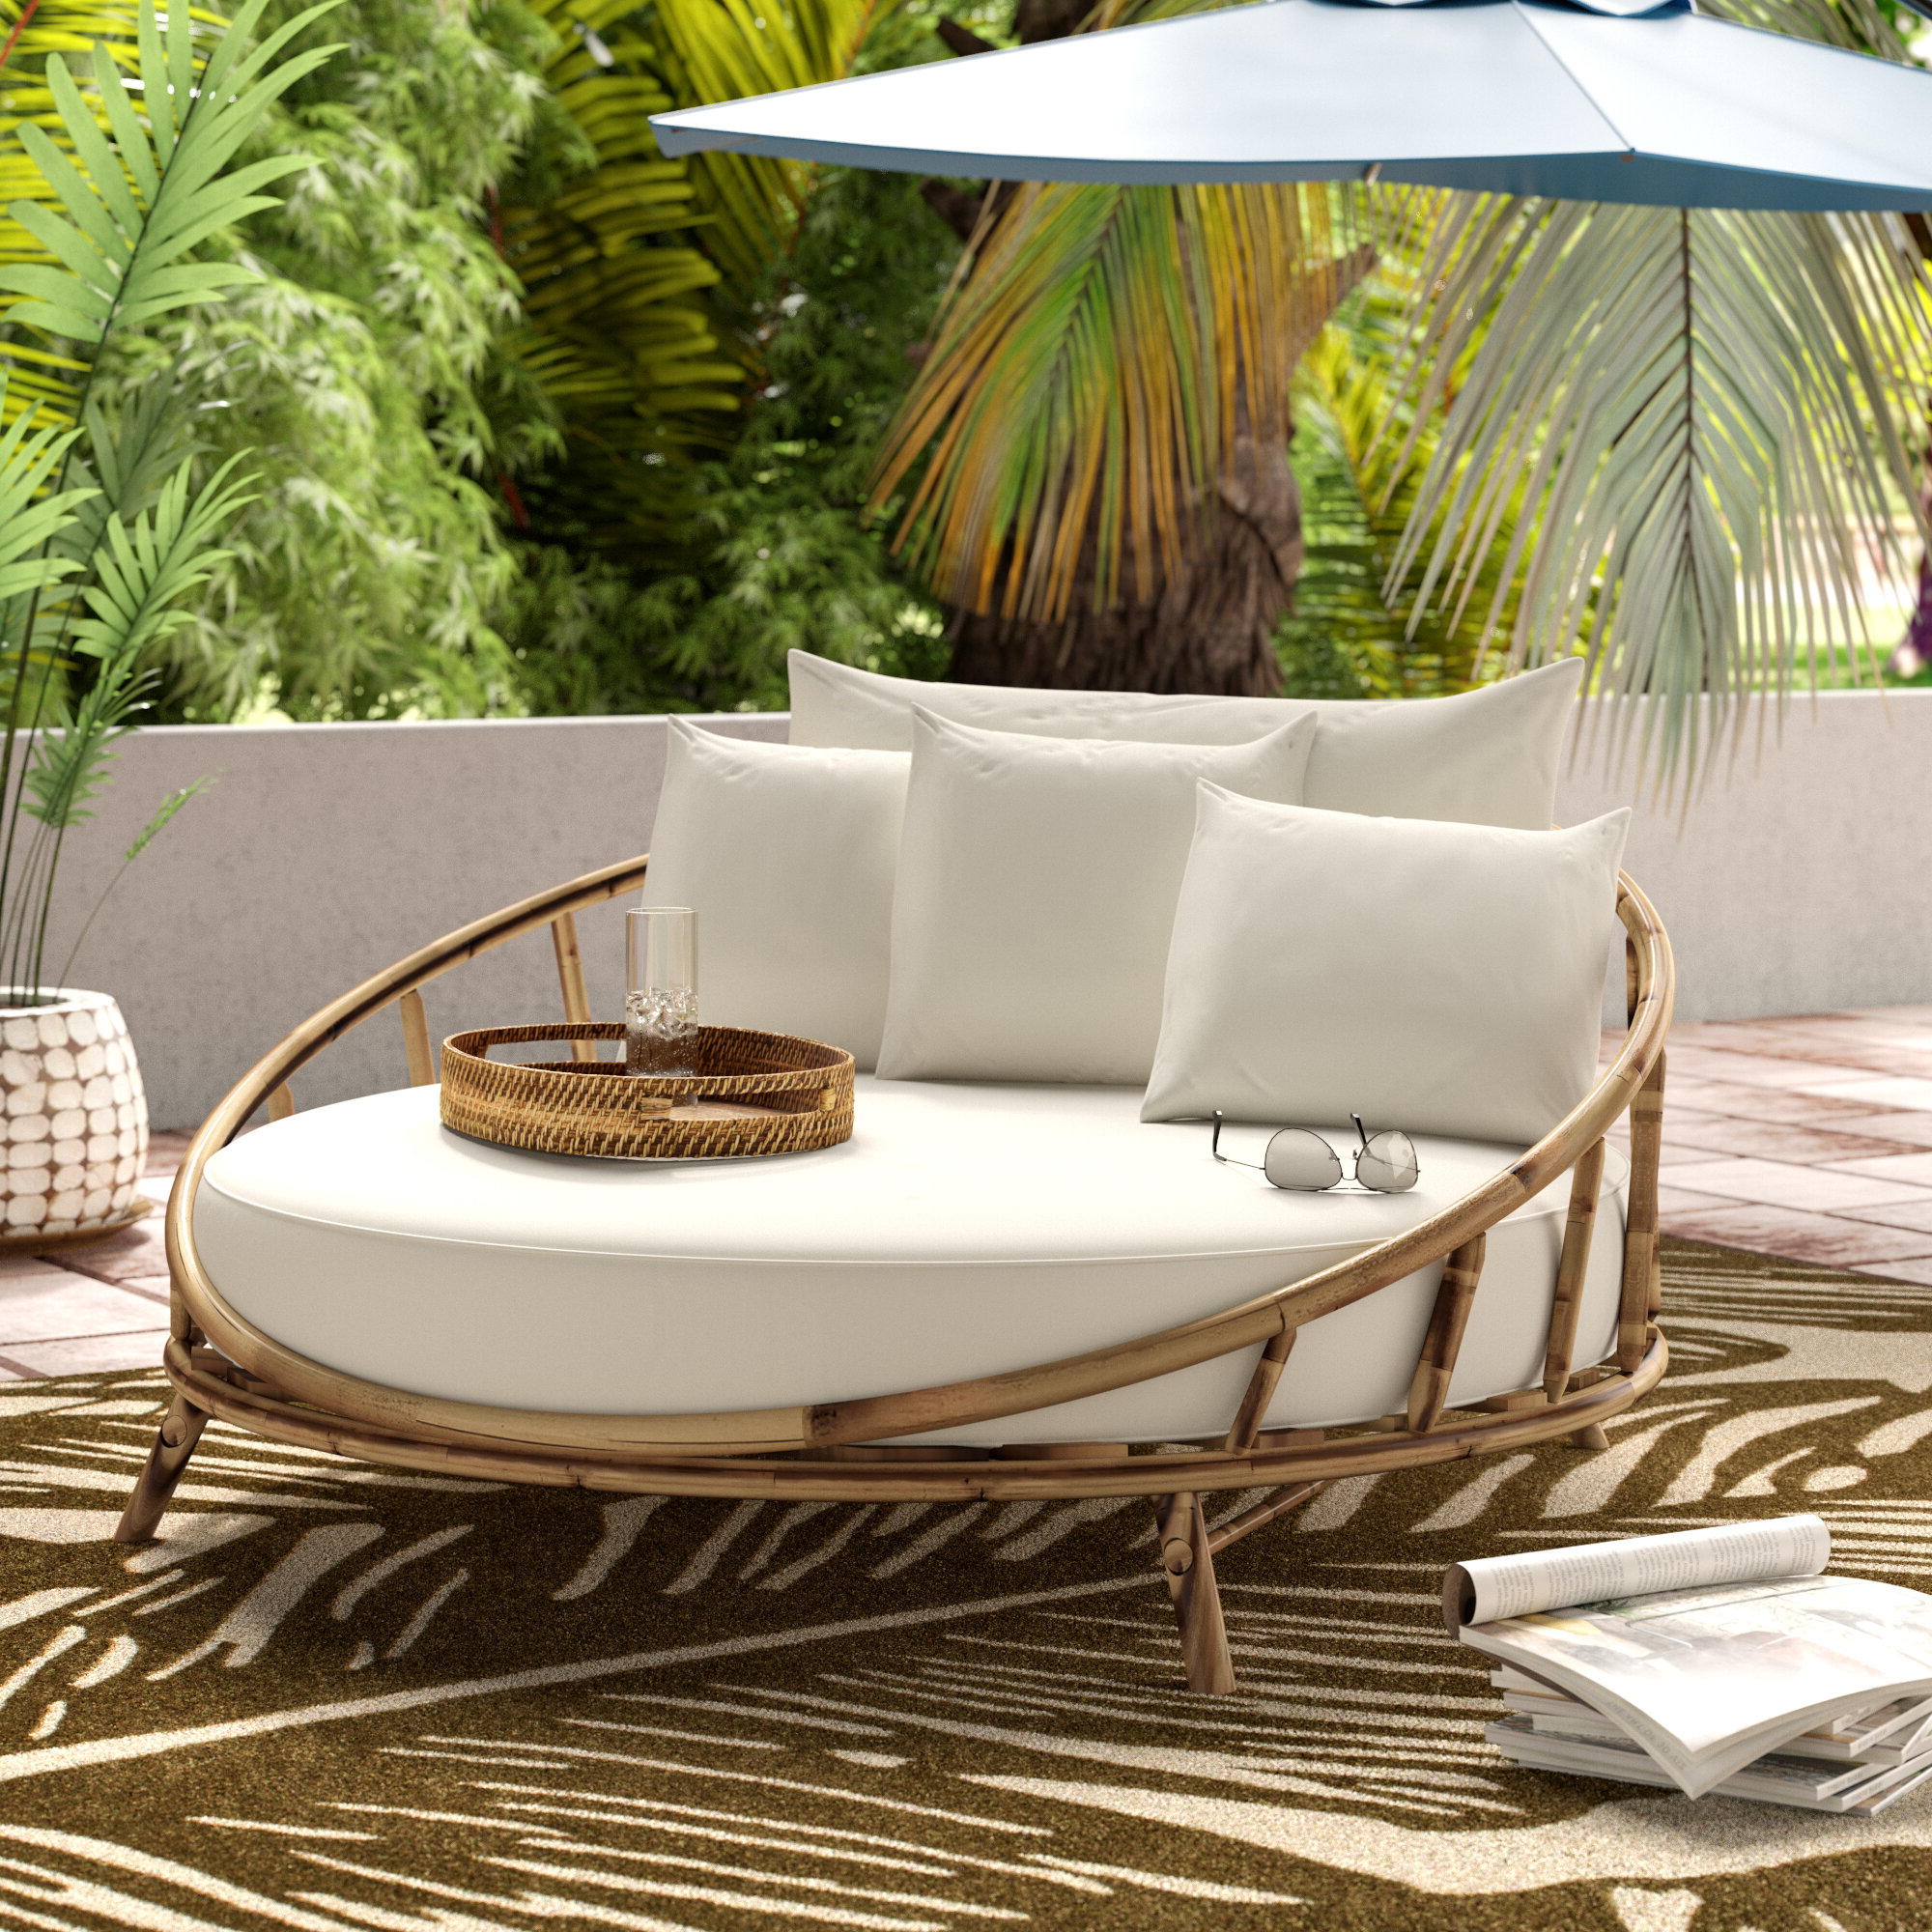 Latest Olu Bamboo Large Round Patio Daybed With Cushions With Regard To Bamboo Daybeds With Canopy (View 13 of 25)